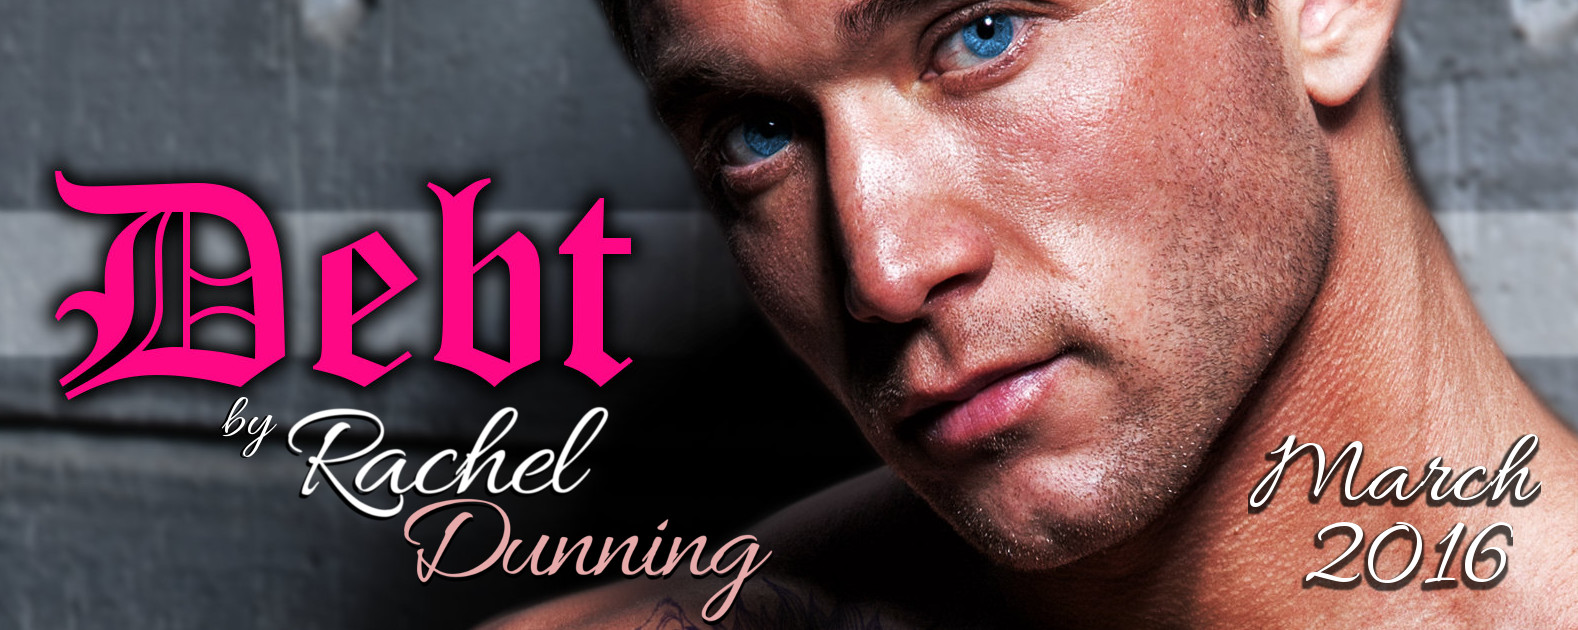 Coming Soon! Debt by Rachel Dunning